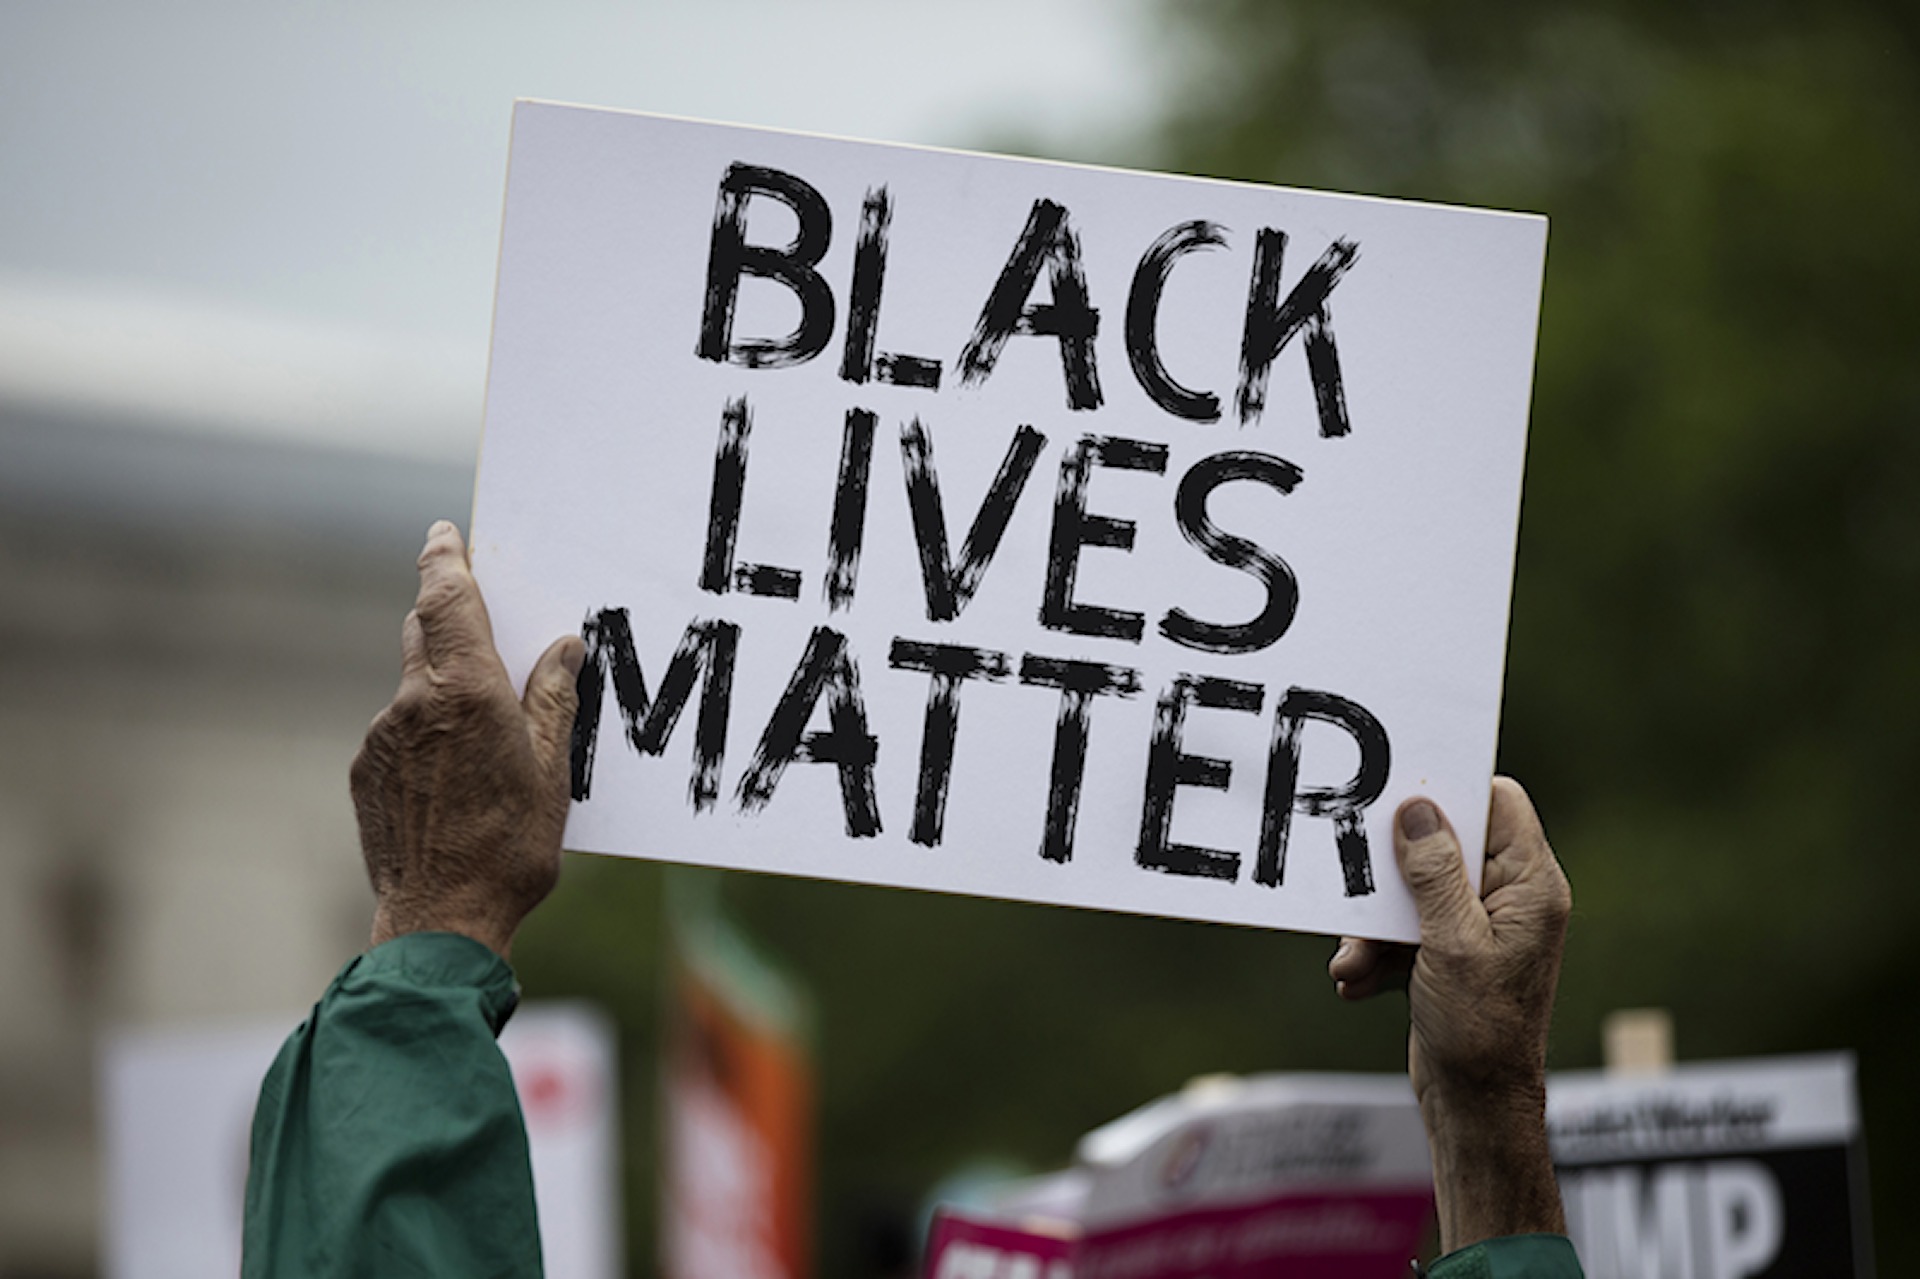 Man holding BLM sign